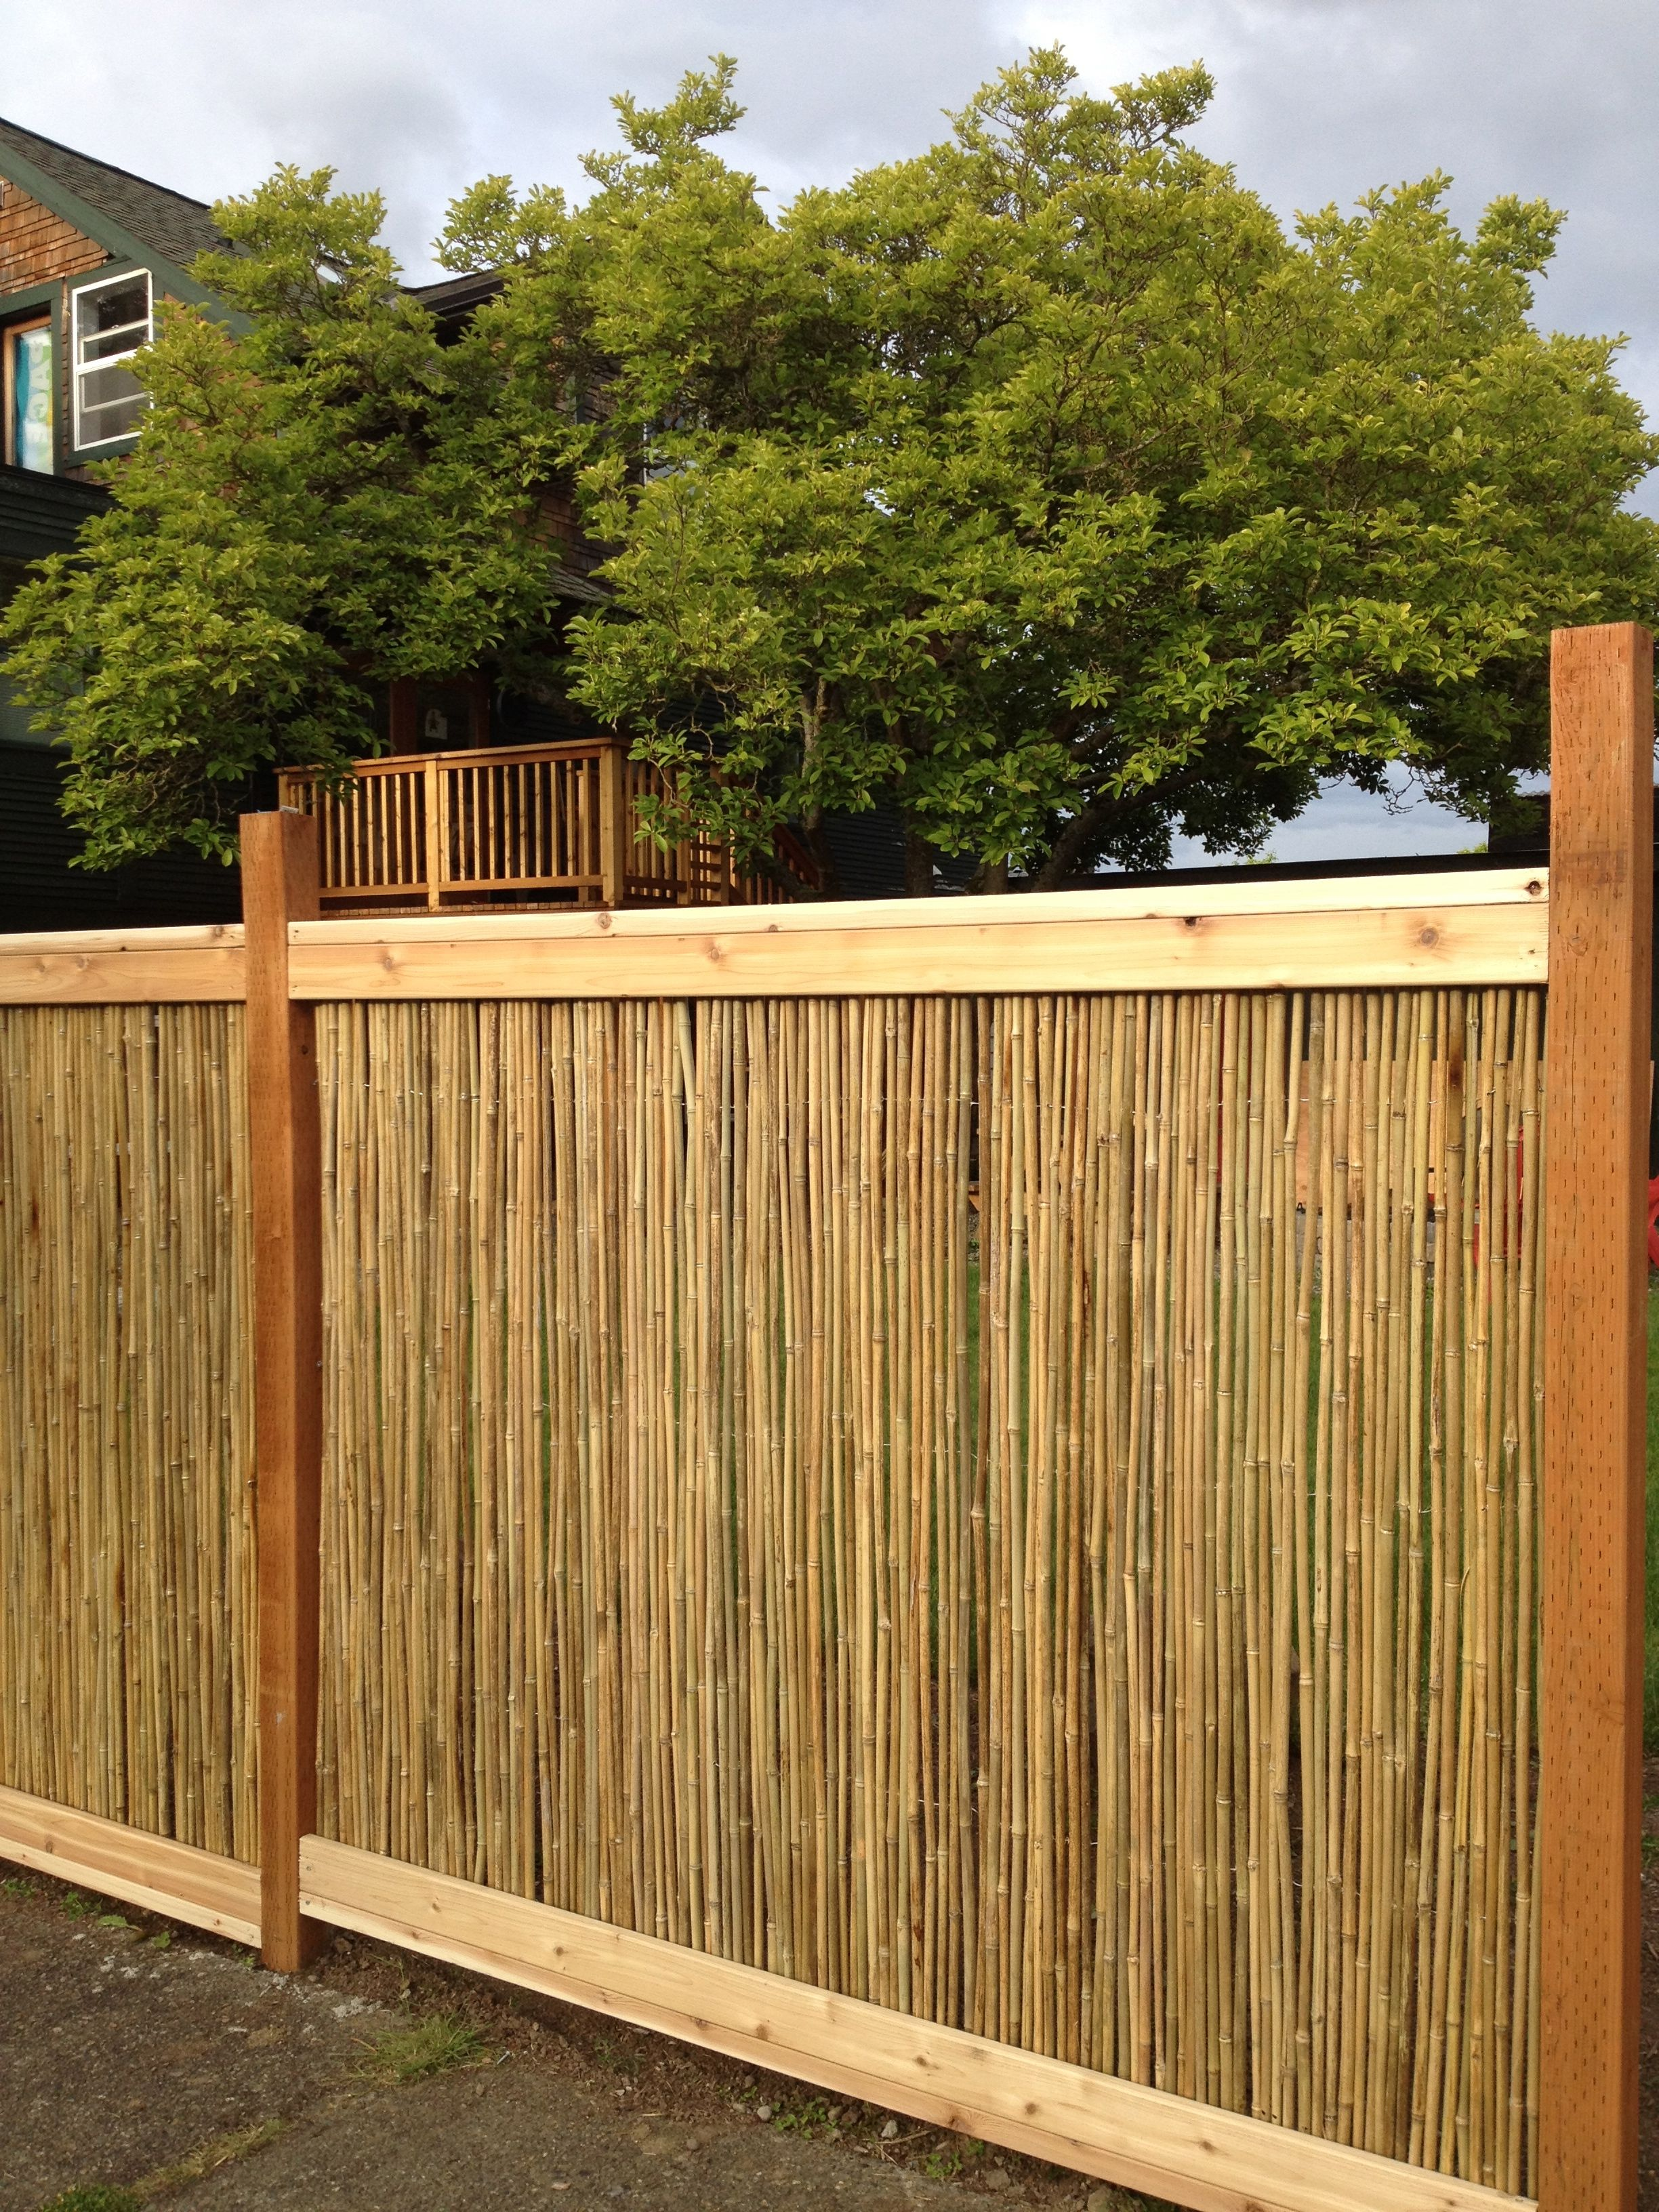 A Fence Created From Using 6 X8 X1 2 Fencing Purchased From Www Bamboo Home Com S Store In Seattle Bamboo House Design Patio Bamboo Picture Frames